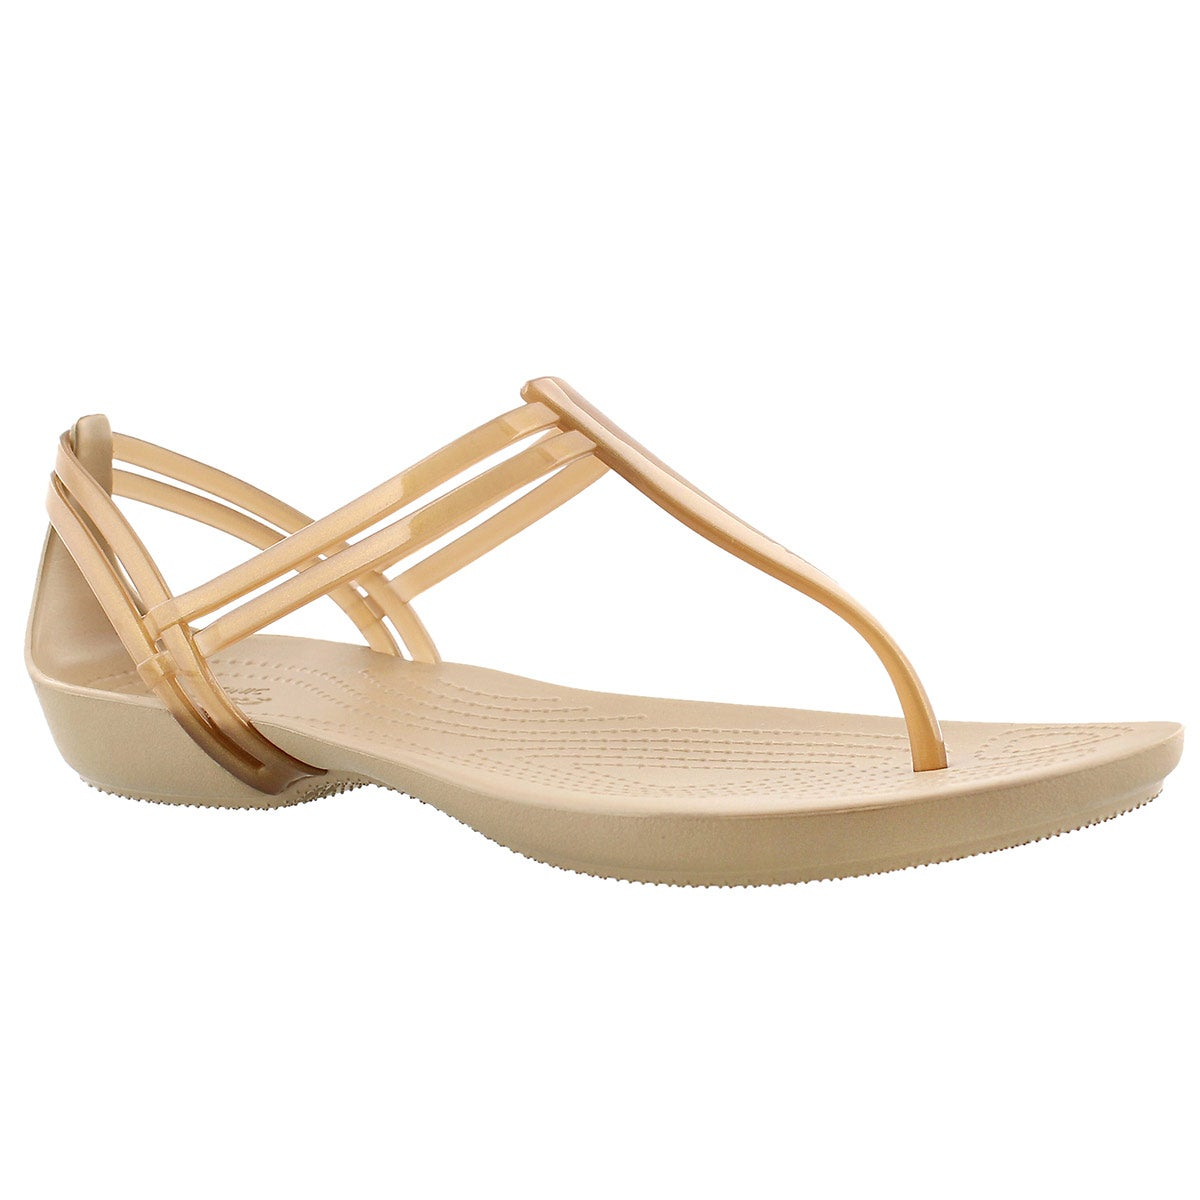 Women's ISABELLA T-STRAP bronze thong sandals